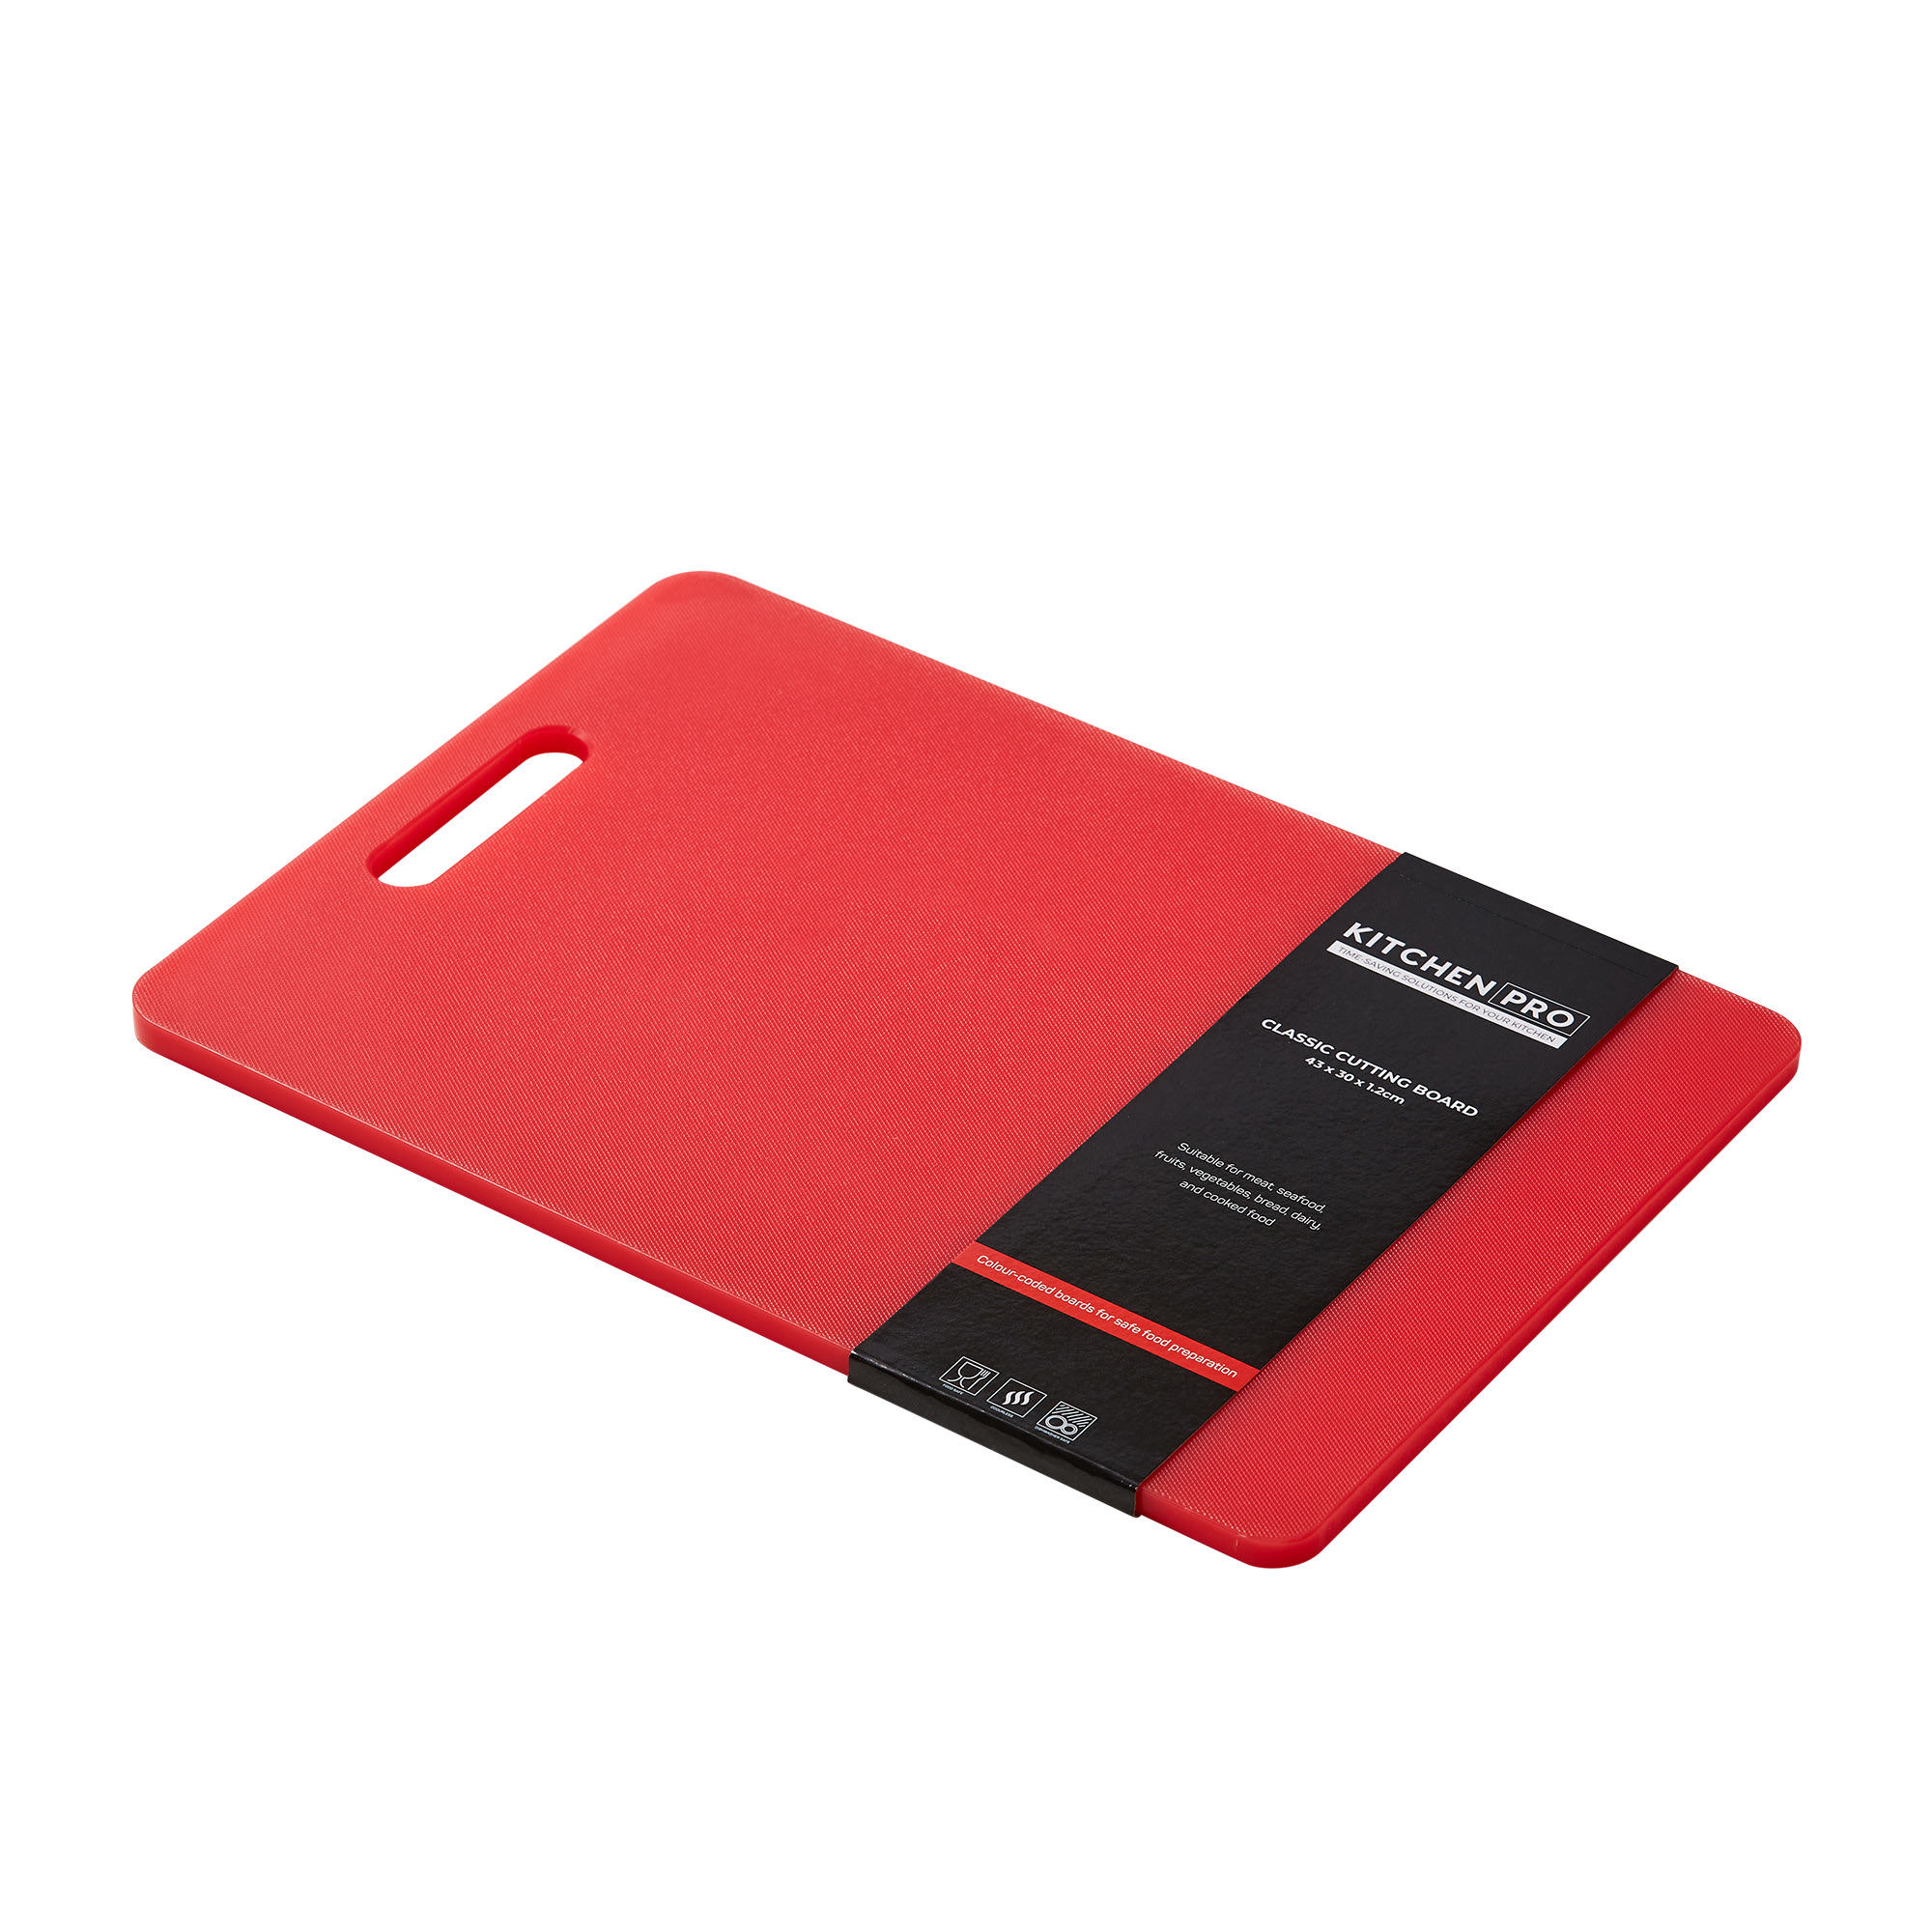 Kitchen Pro Classic Cutting Board 36x25x1.2cm Red image #2